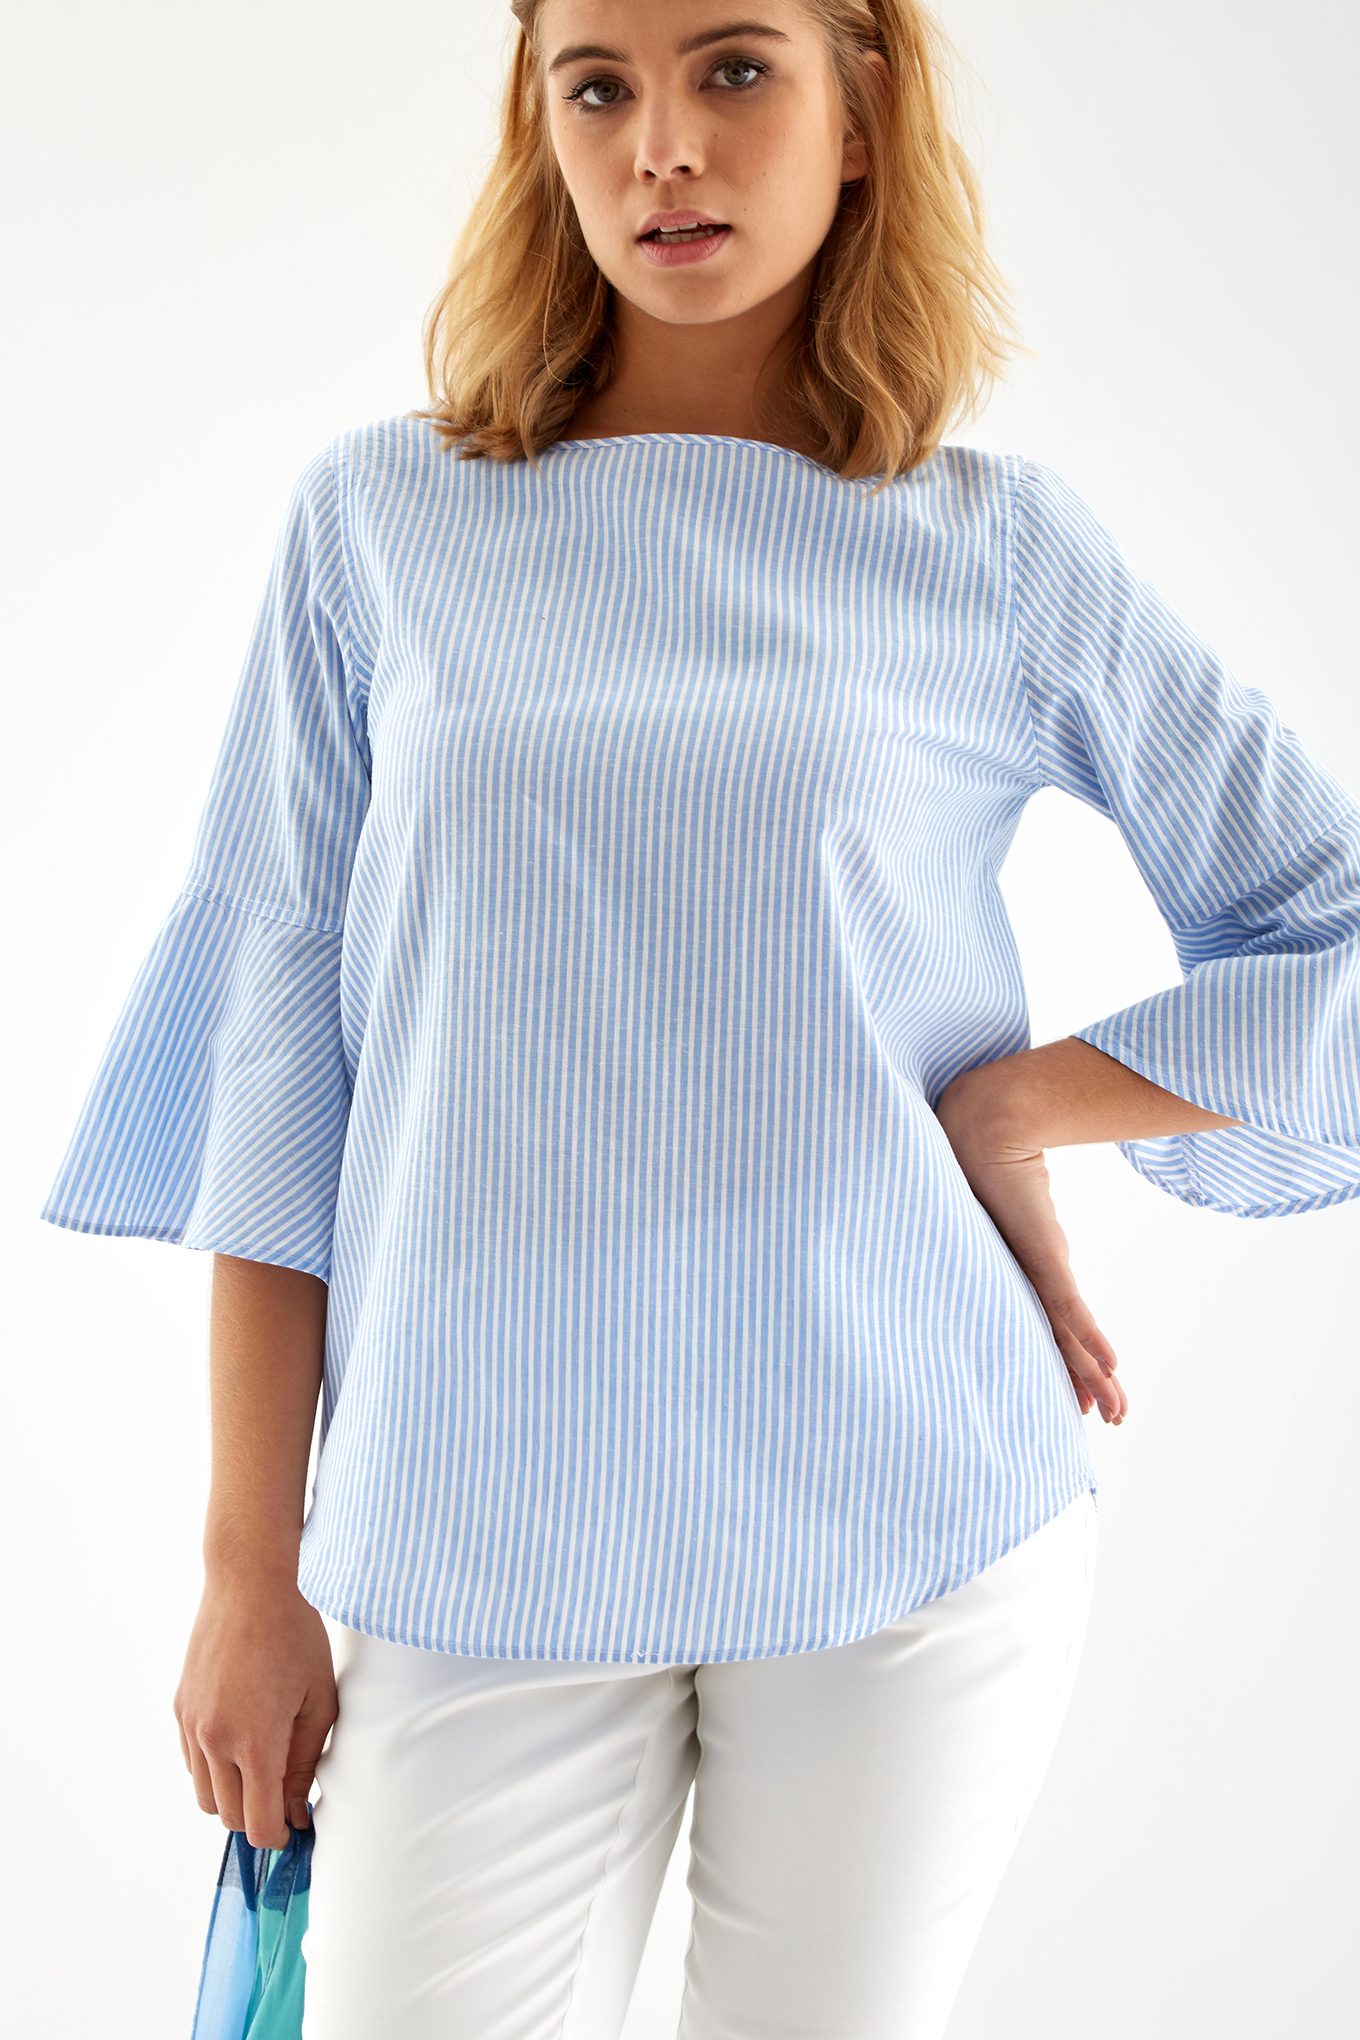 Blouse Stripes Casual Woman